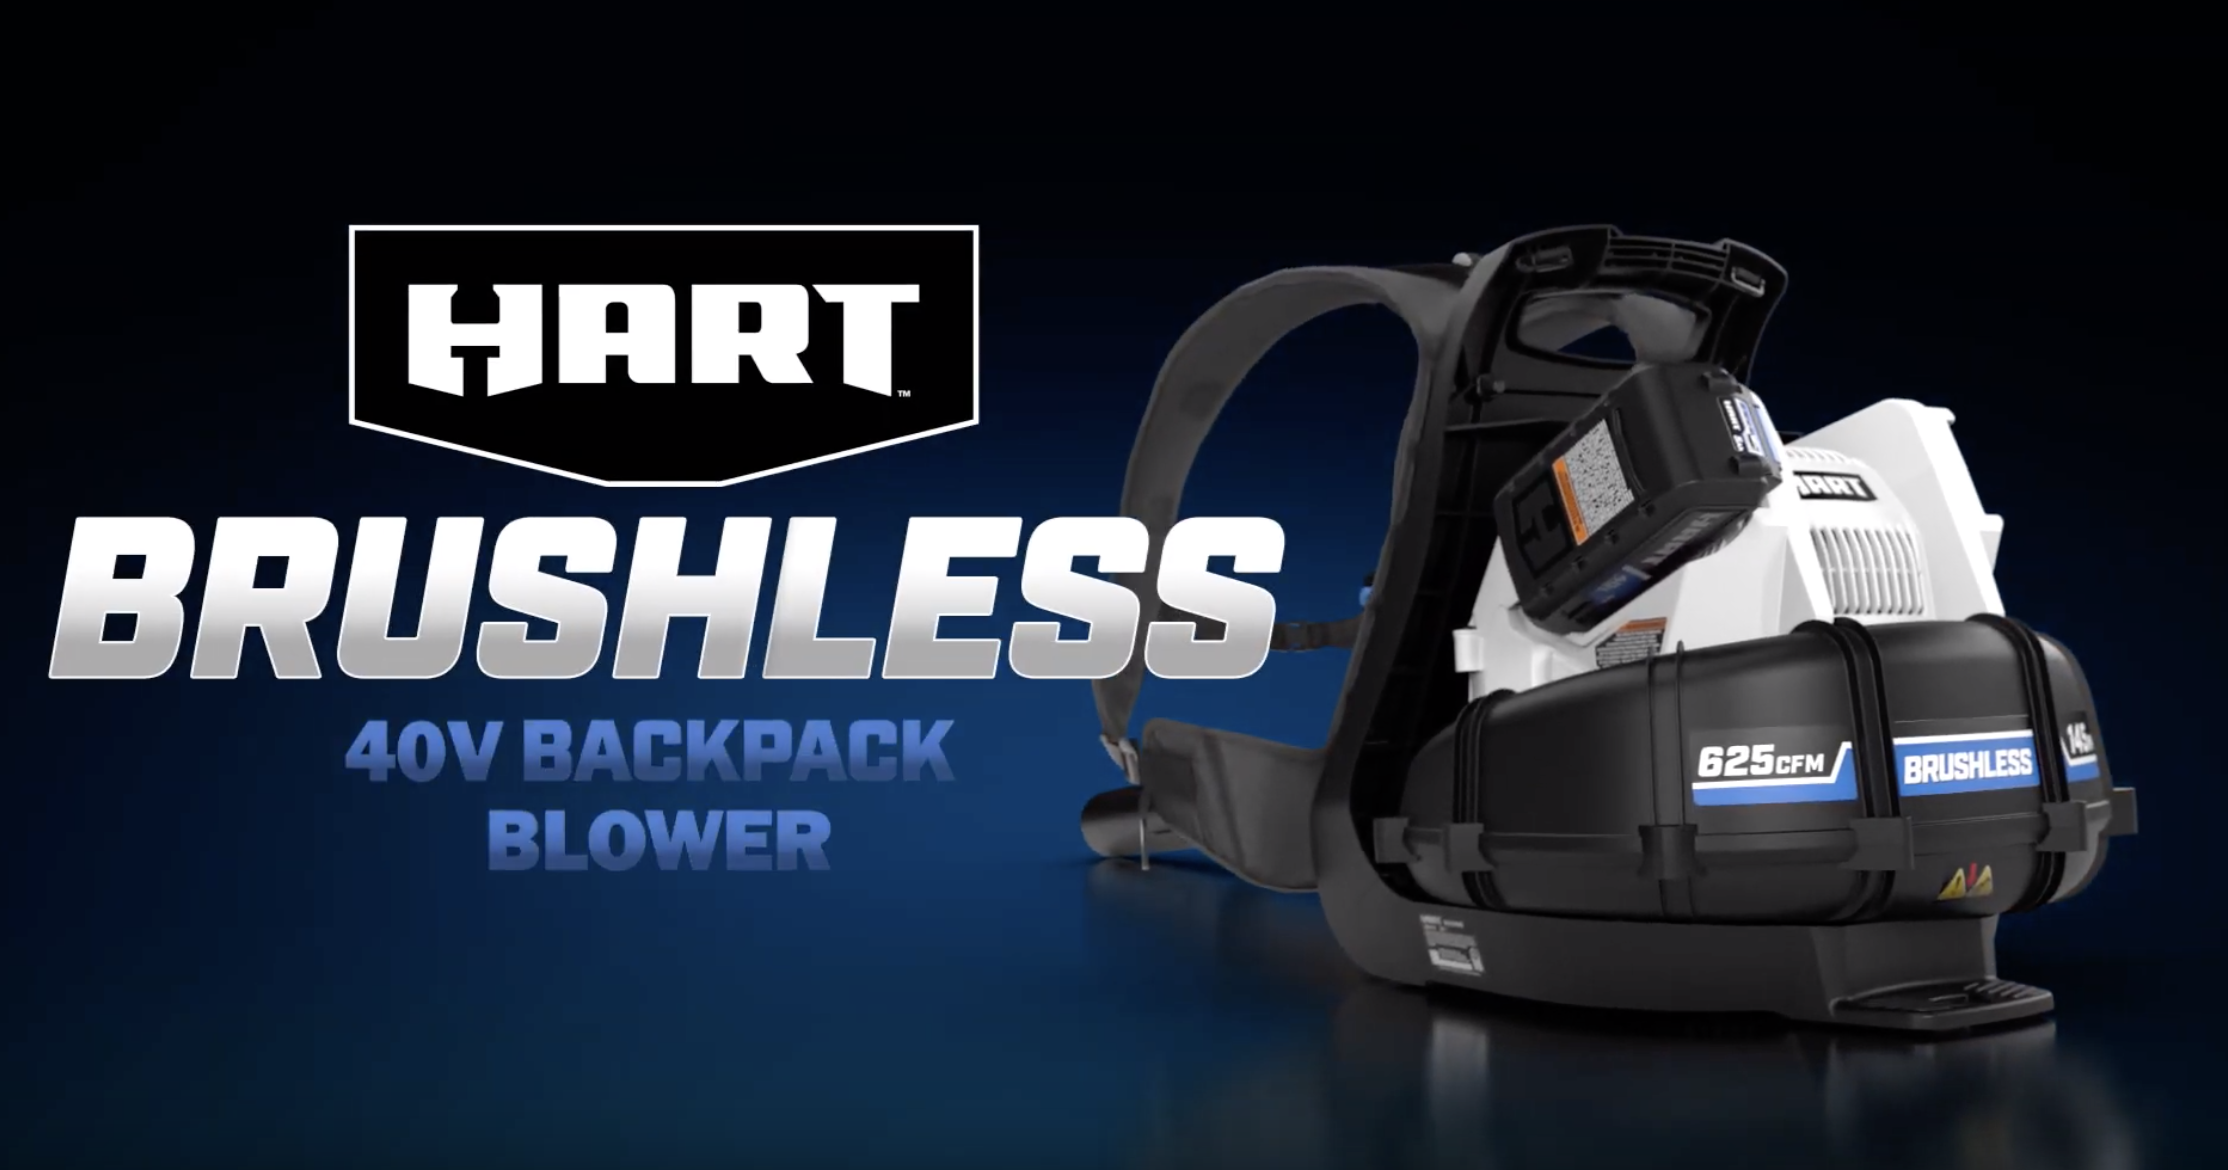 40V Brushless Backpack Blower